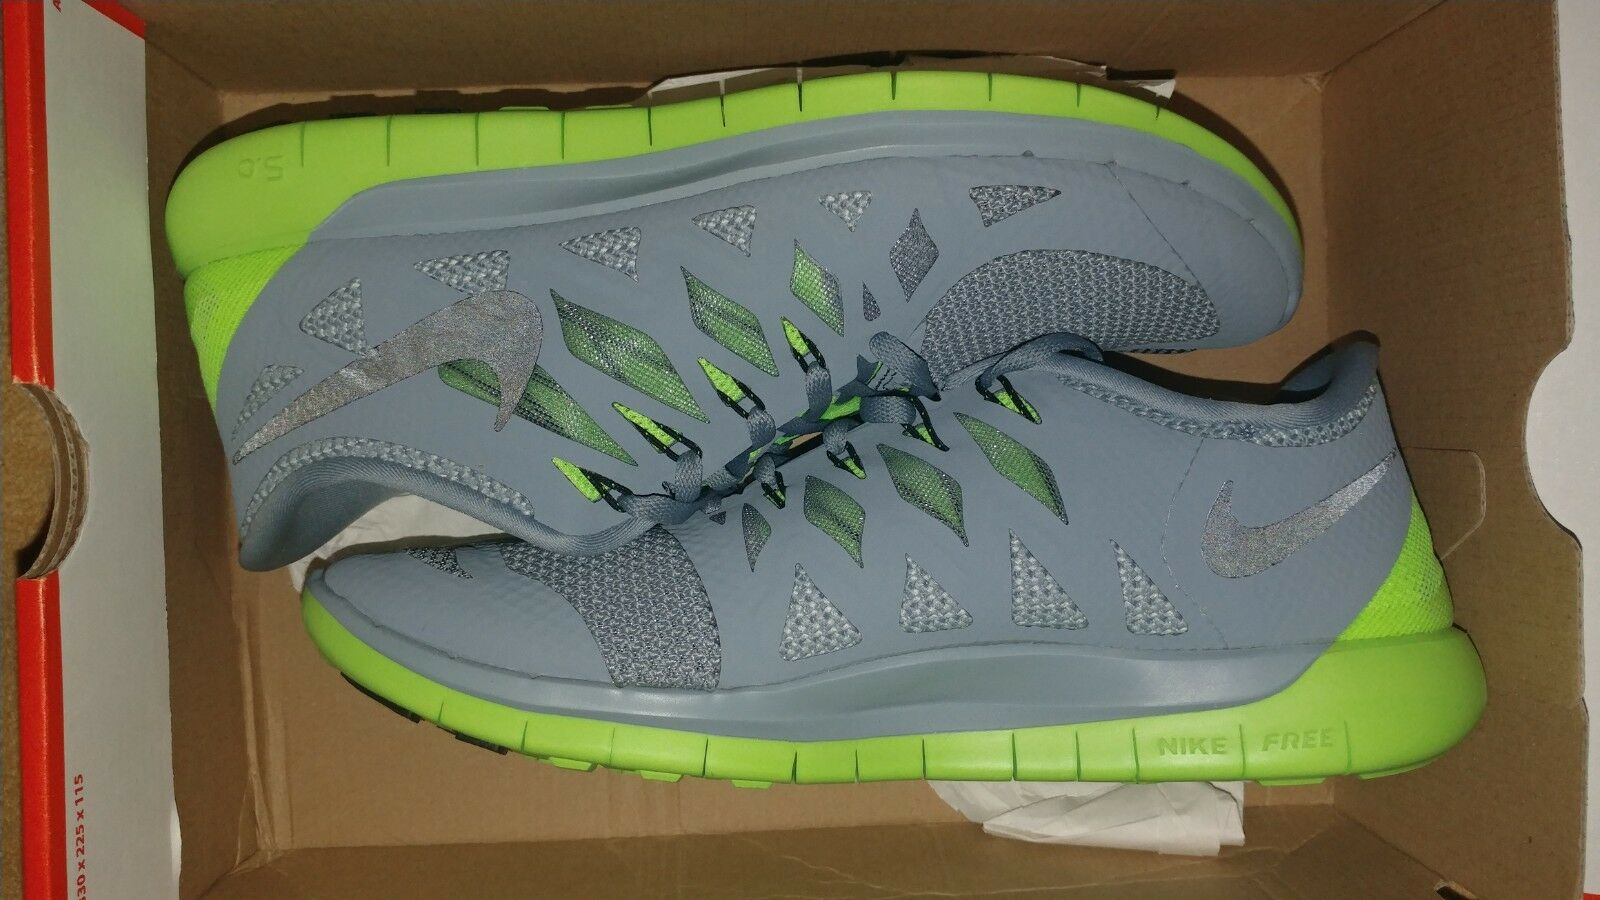 Nike Free 5.0 MGNT GRY BLK-ELCTRC GRN-LT RARE 10.5 NEW Authentic Fast Shipping